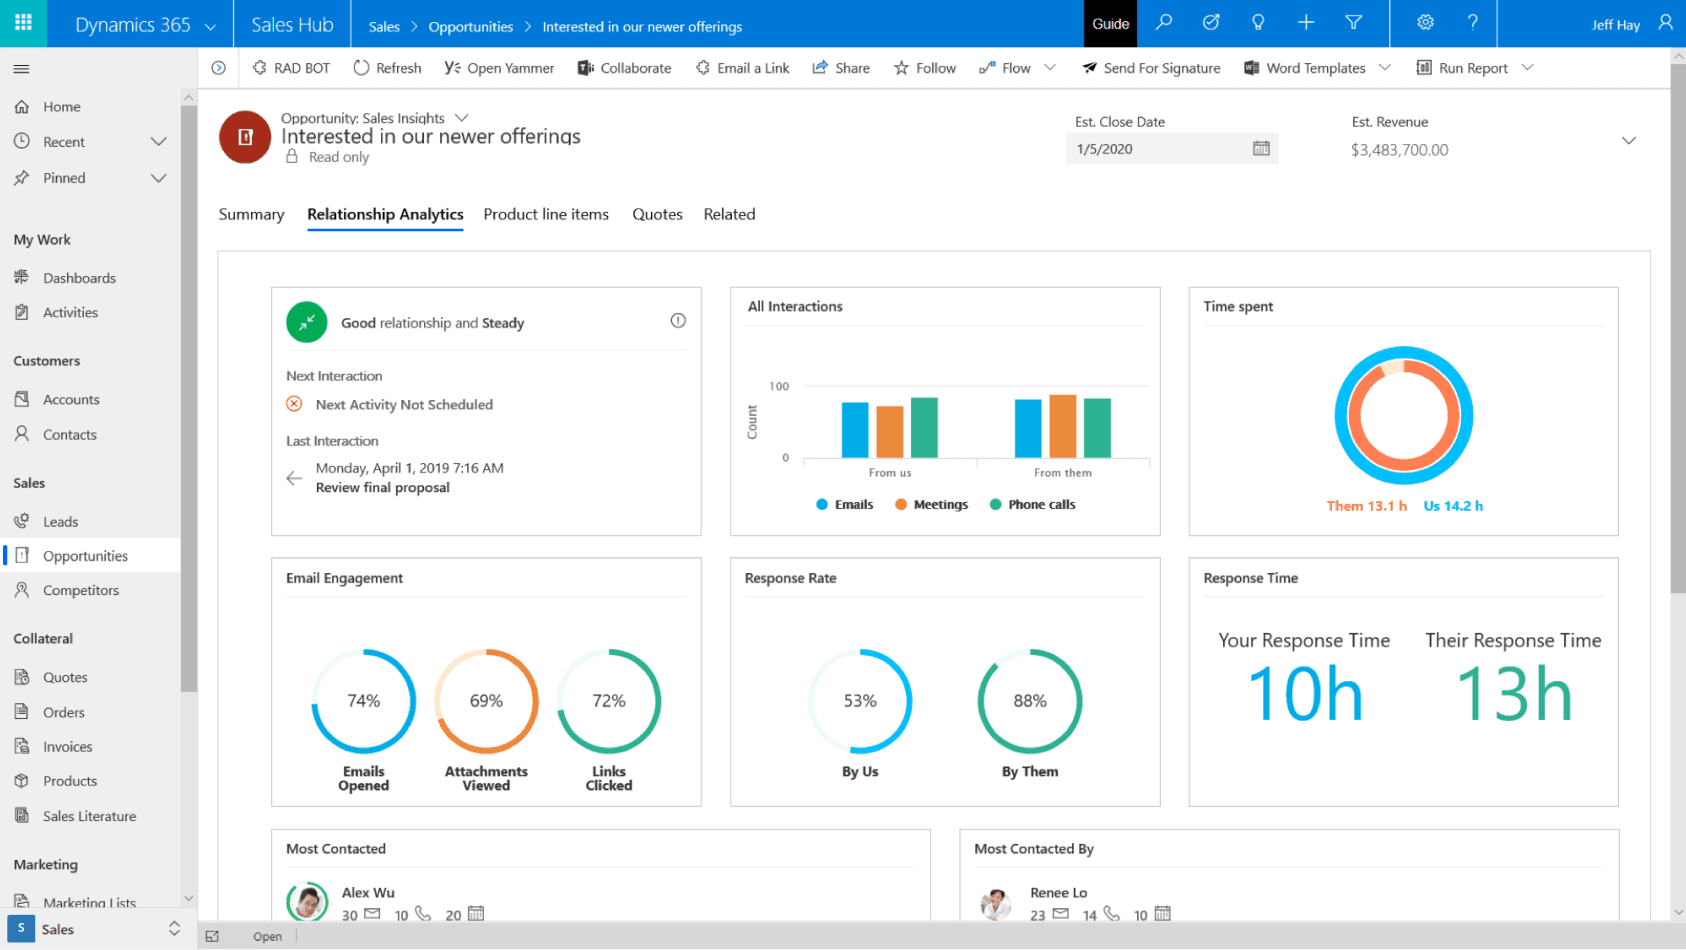 CRM DYNAMICS 365 SALES | DASHBOARD - OPORTUNIDADES